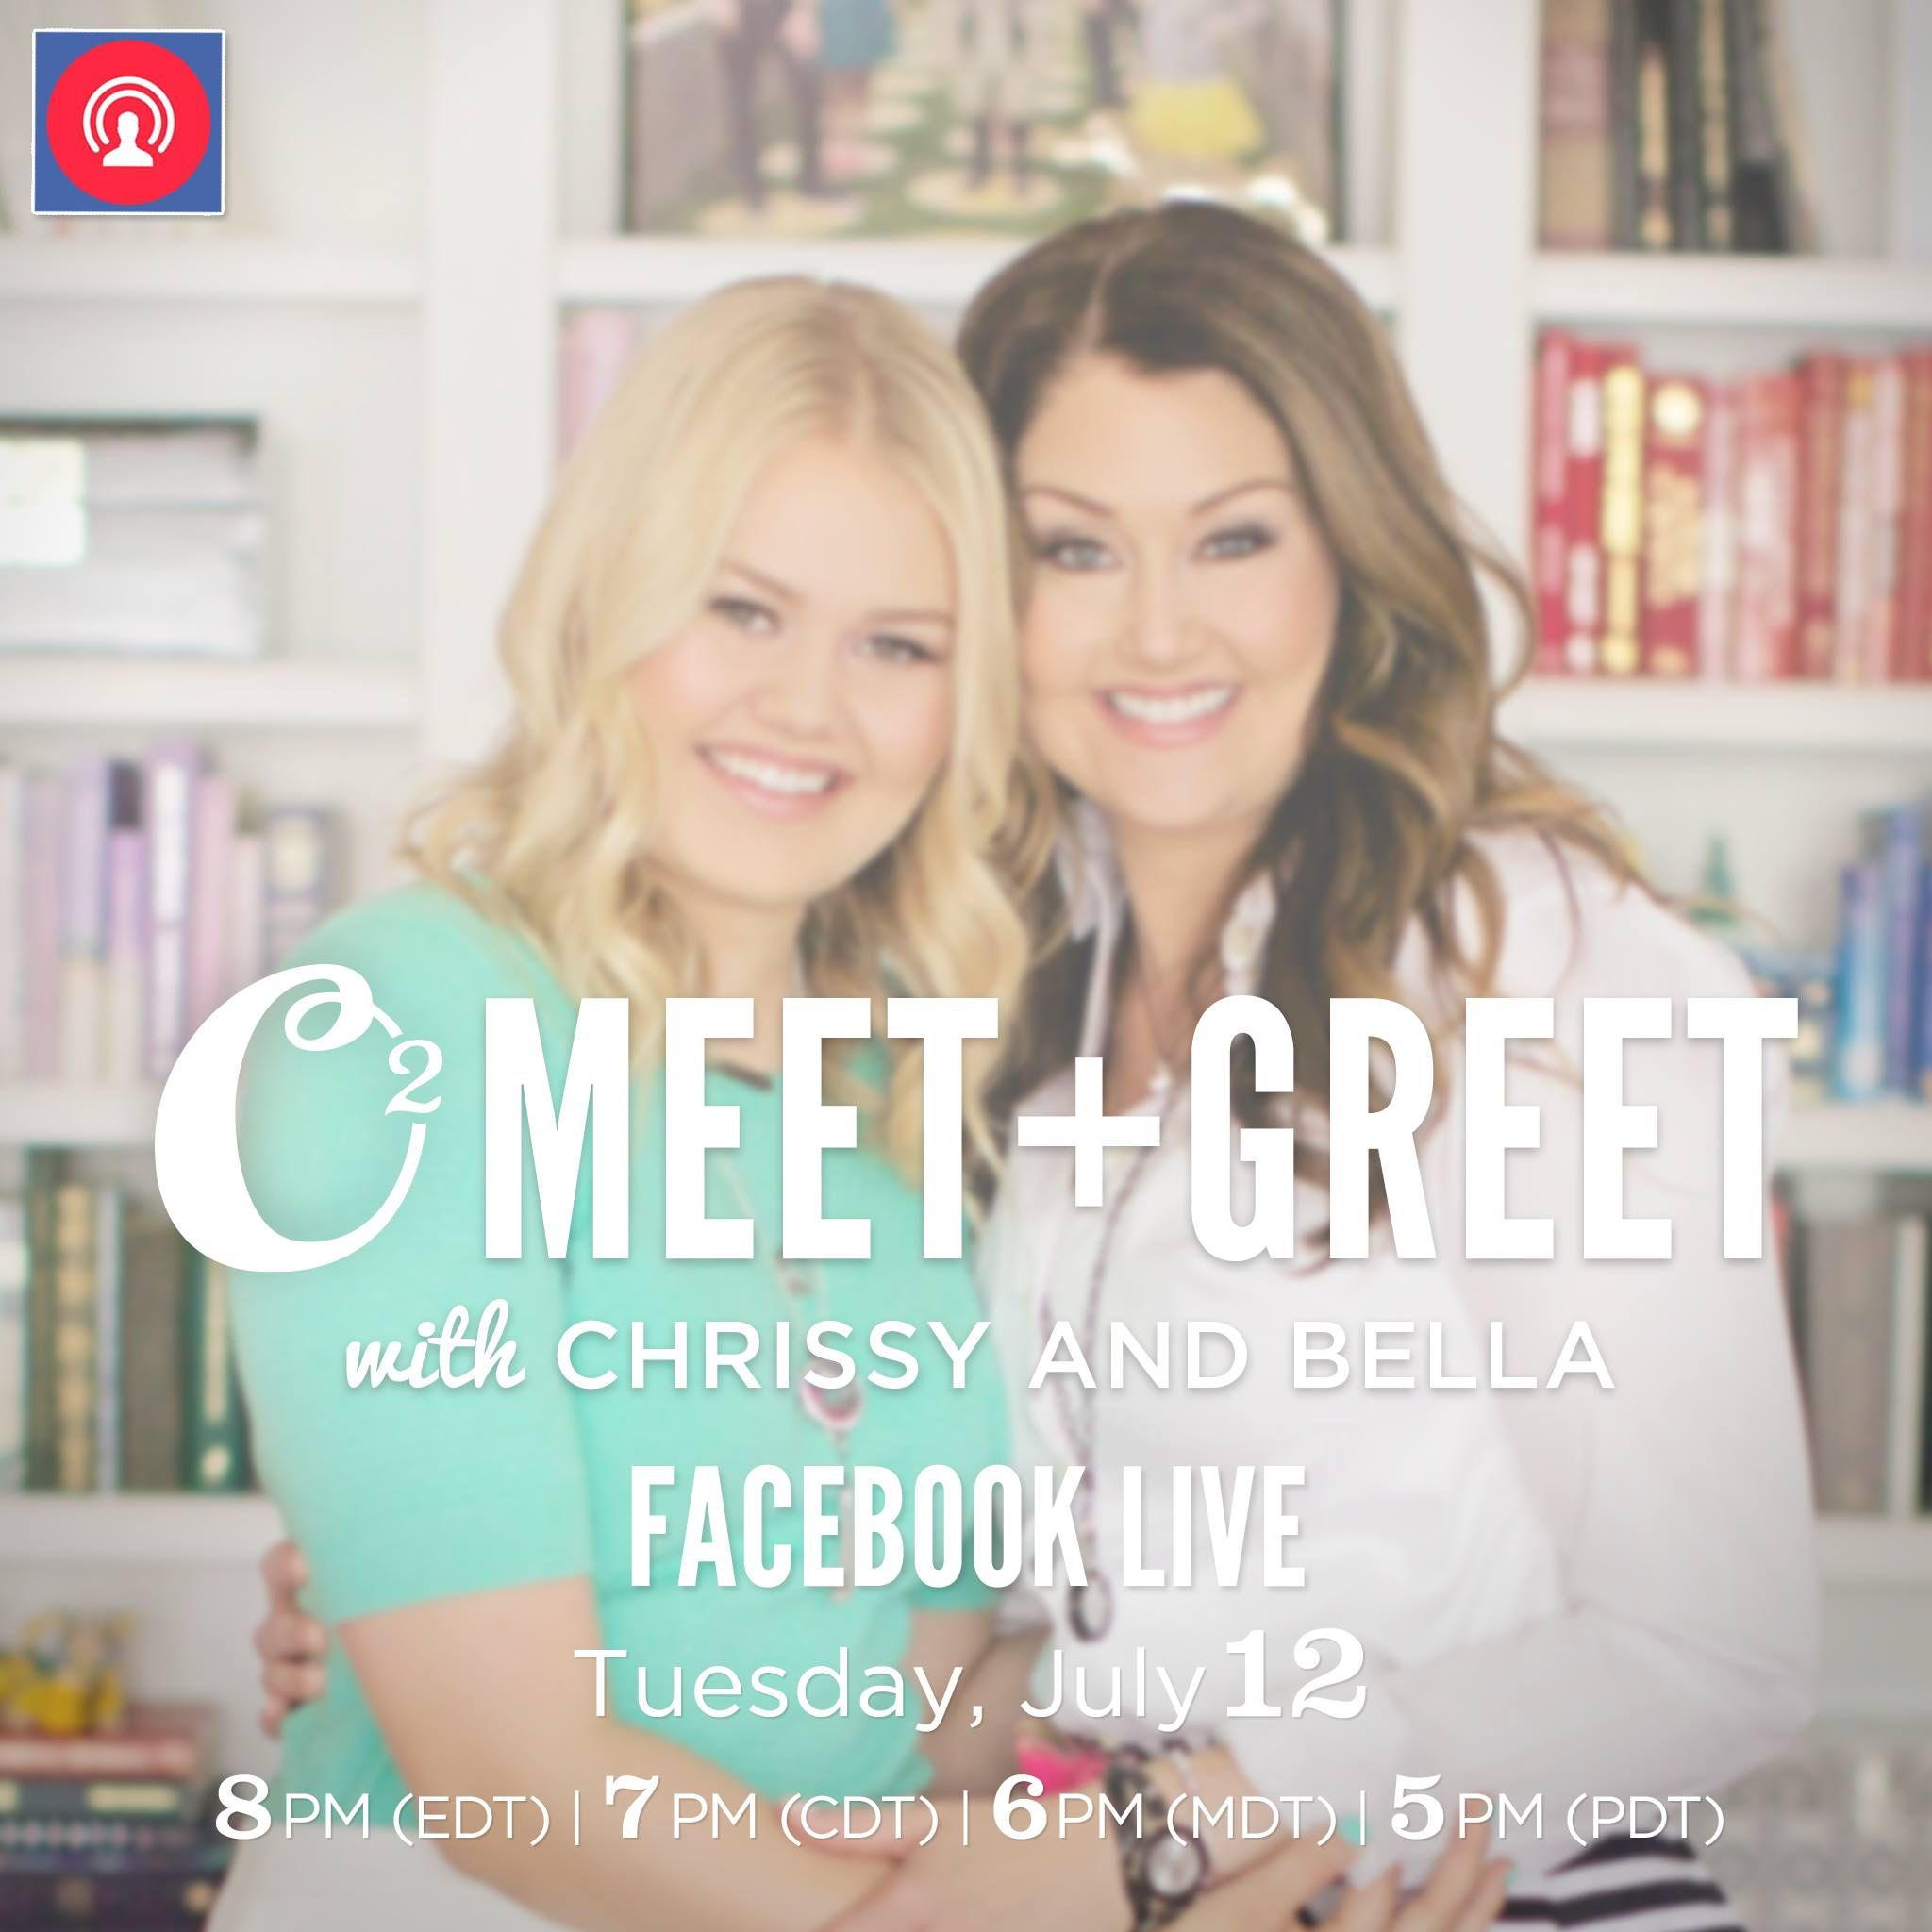 Origami Owl Live Meet And Greet On Facebook Join In Httpswww